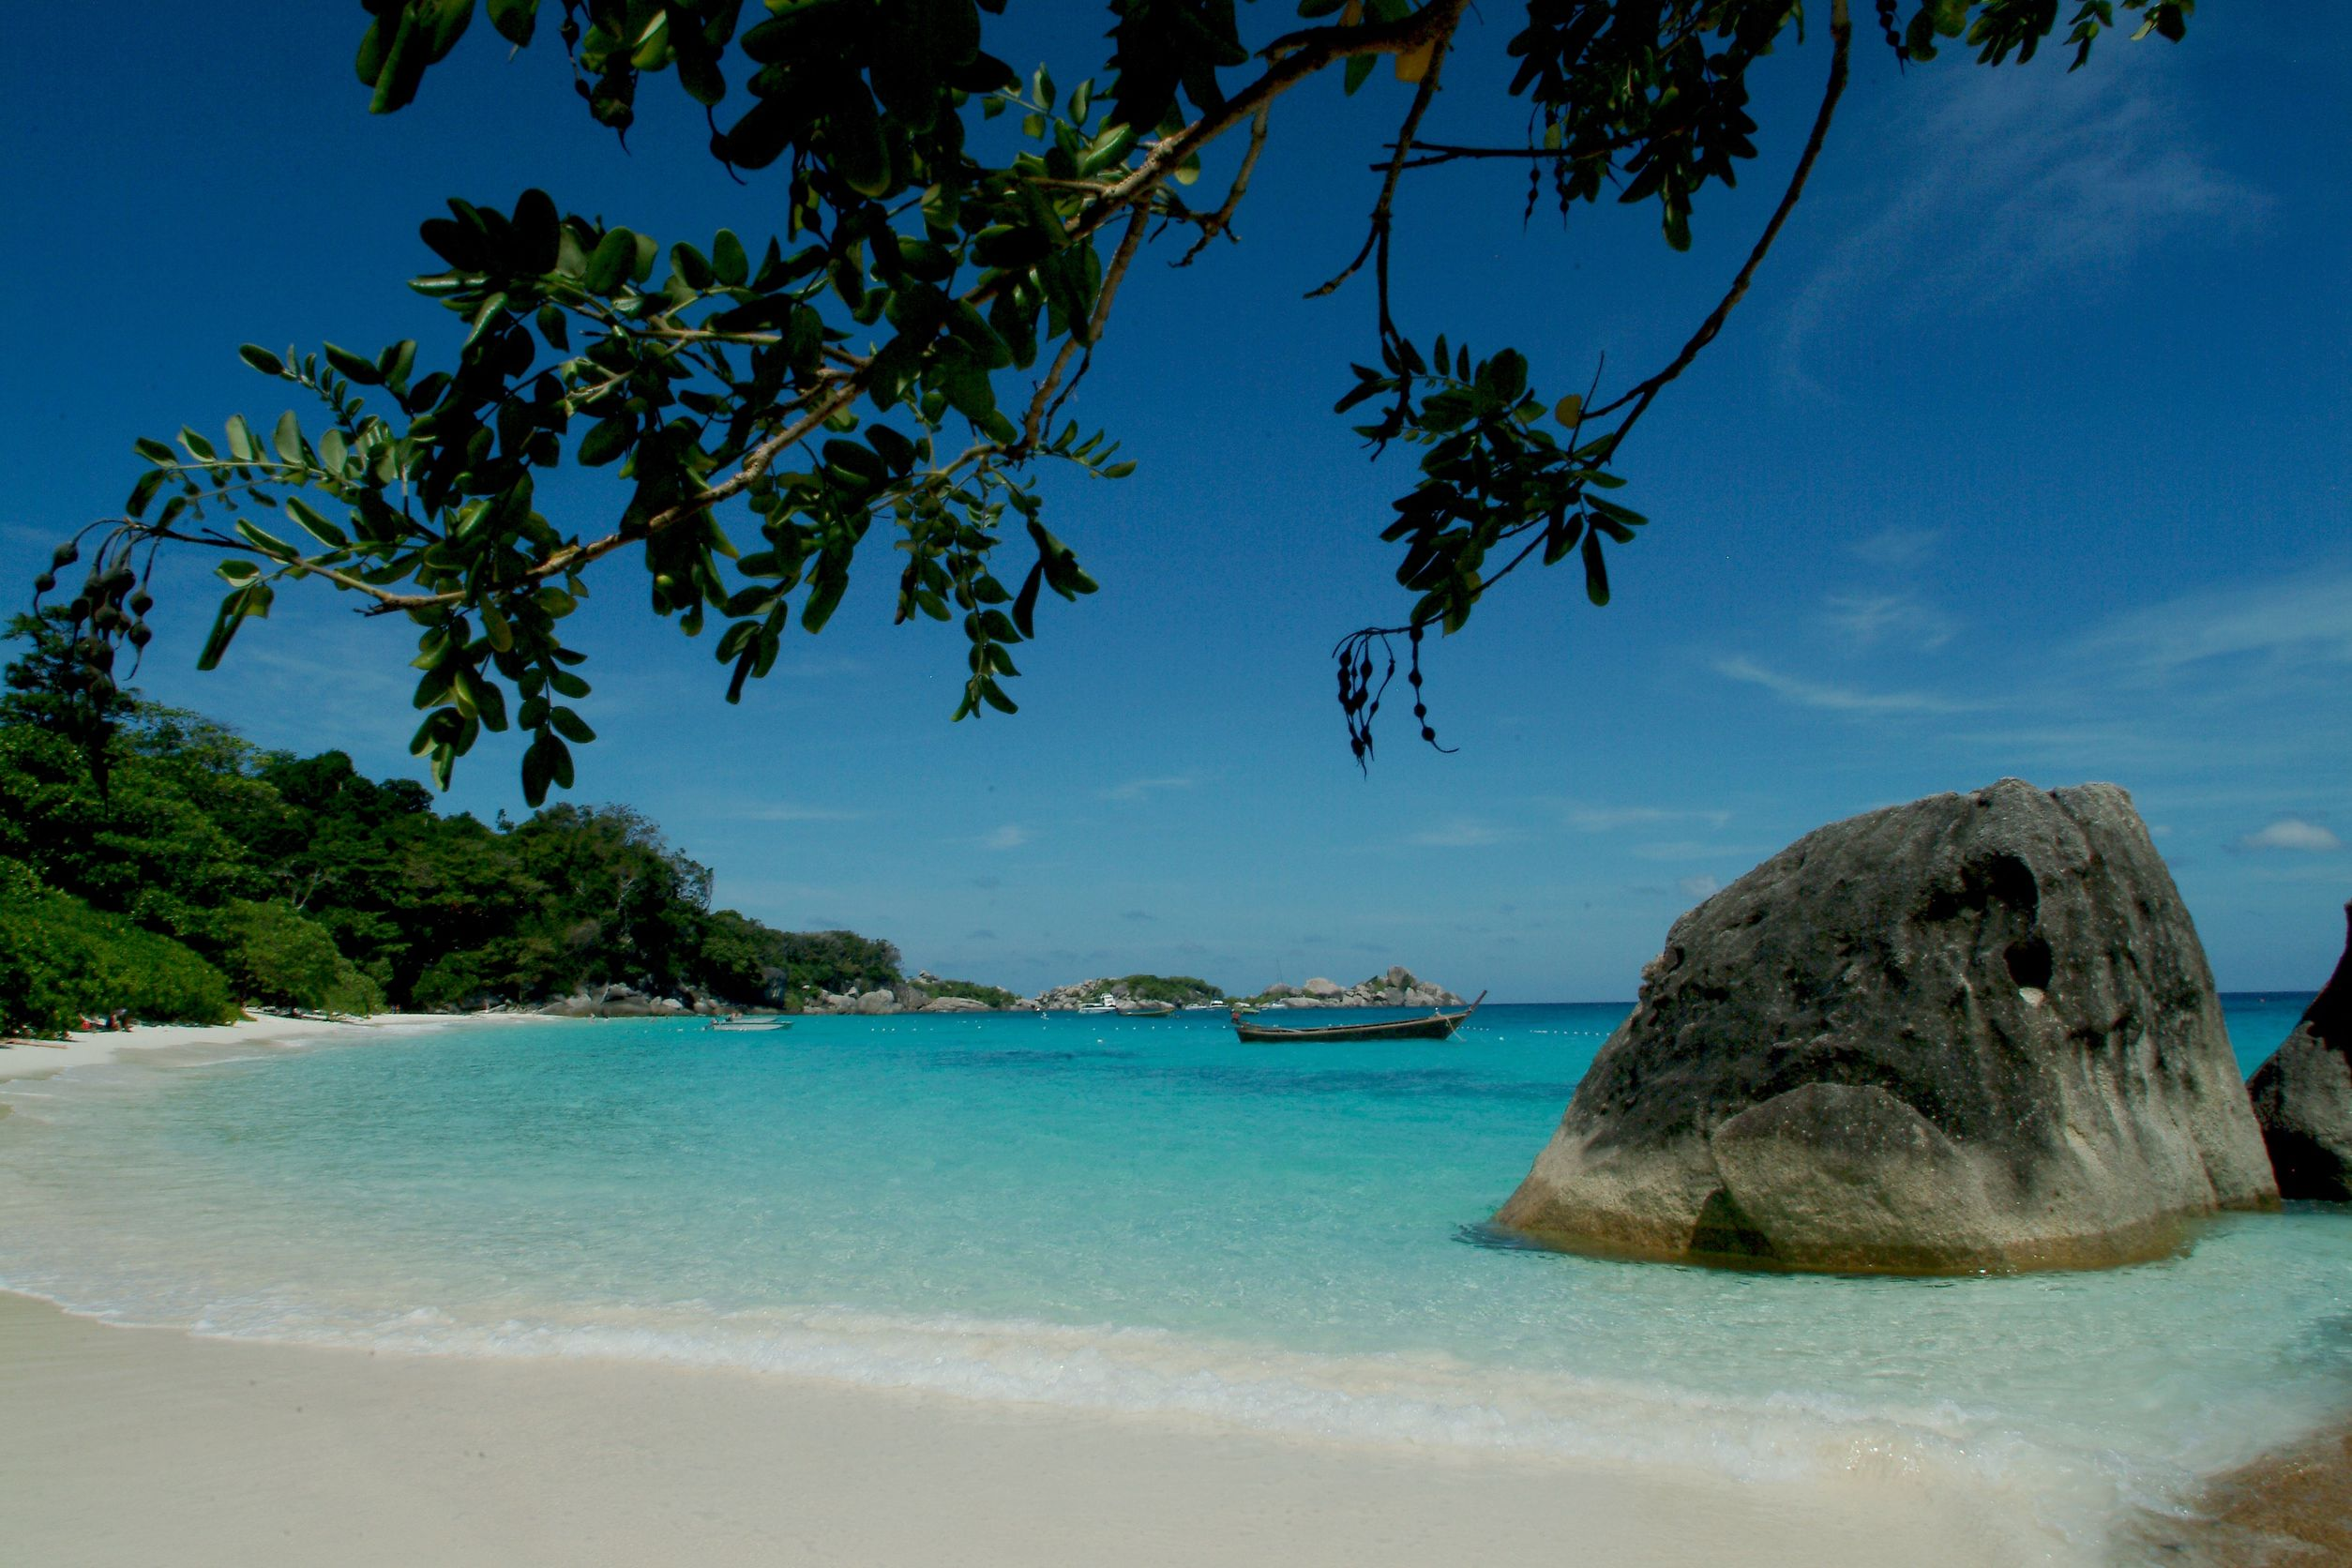 Photo Credit http://www.twizzle.org/blog/2012/12/03/sy-twizzle-in-thailand-and-the-andaman-sea/